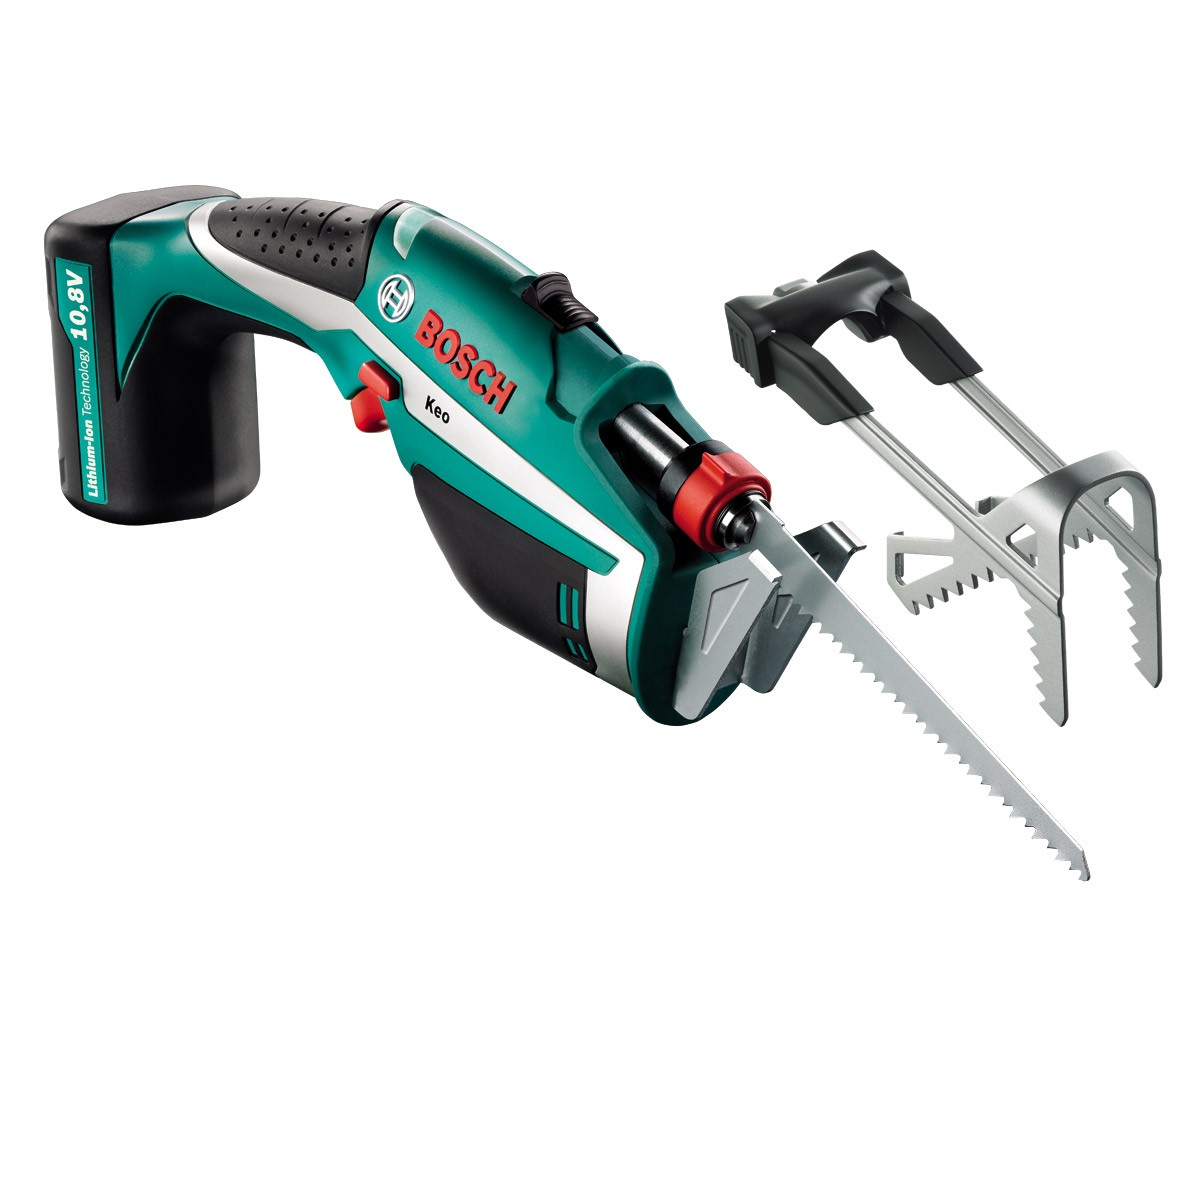 Bosch Green Keo Set 10 8v Cordless Garden Saw With